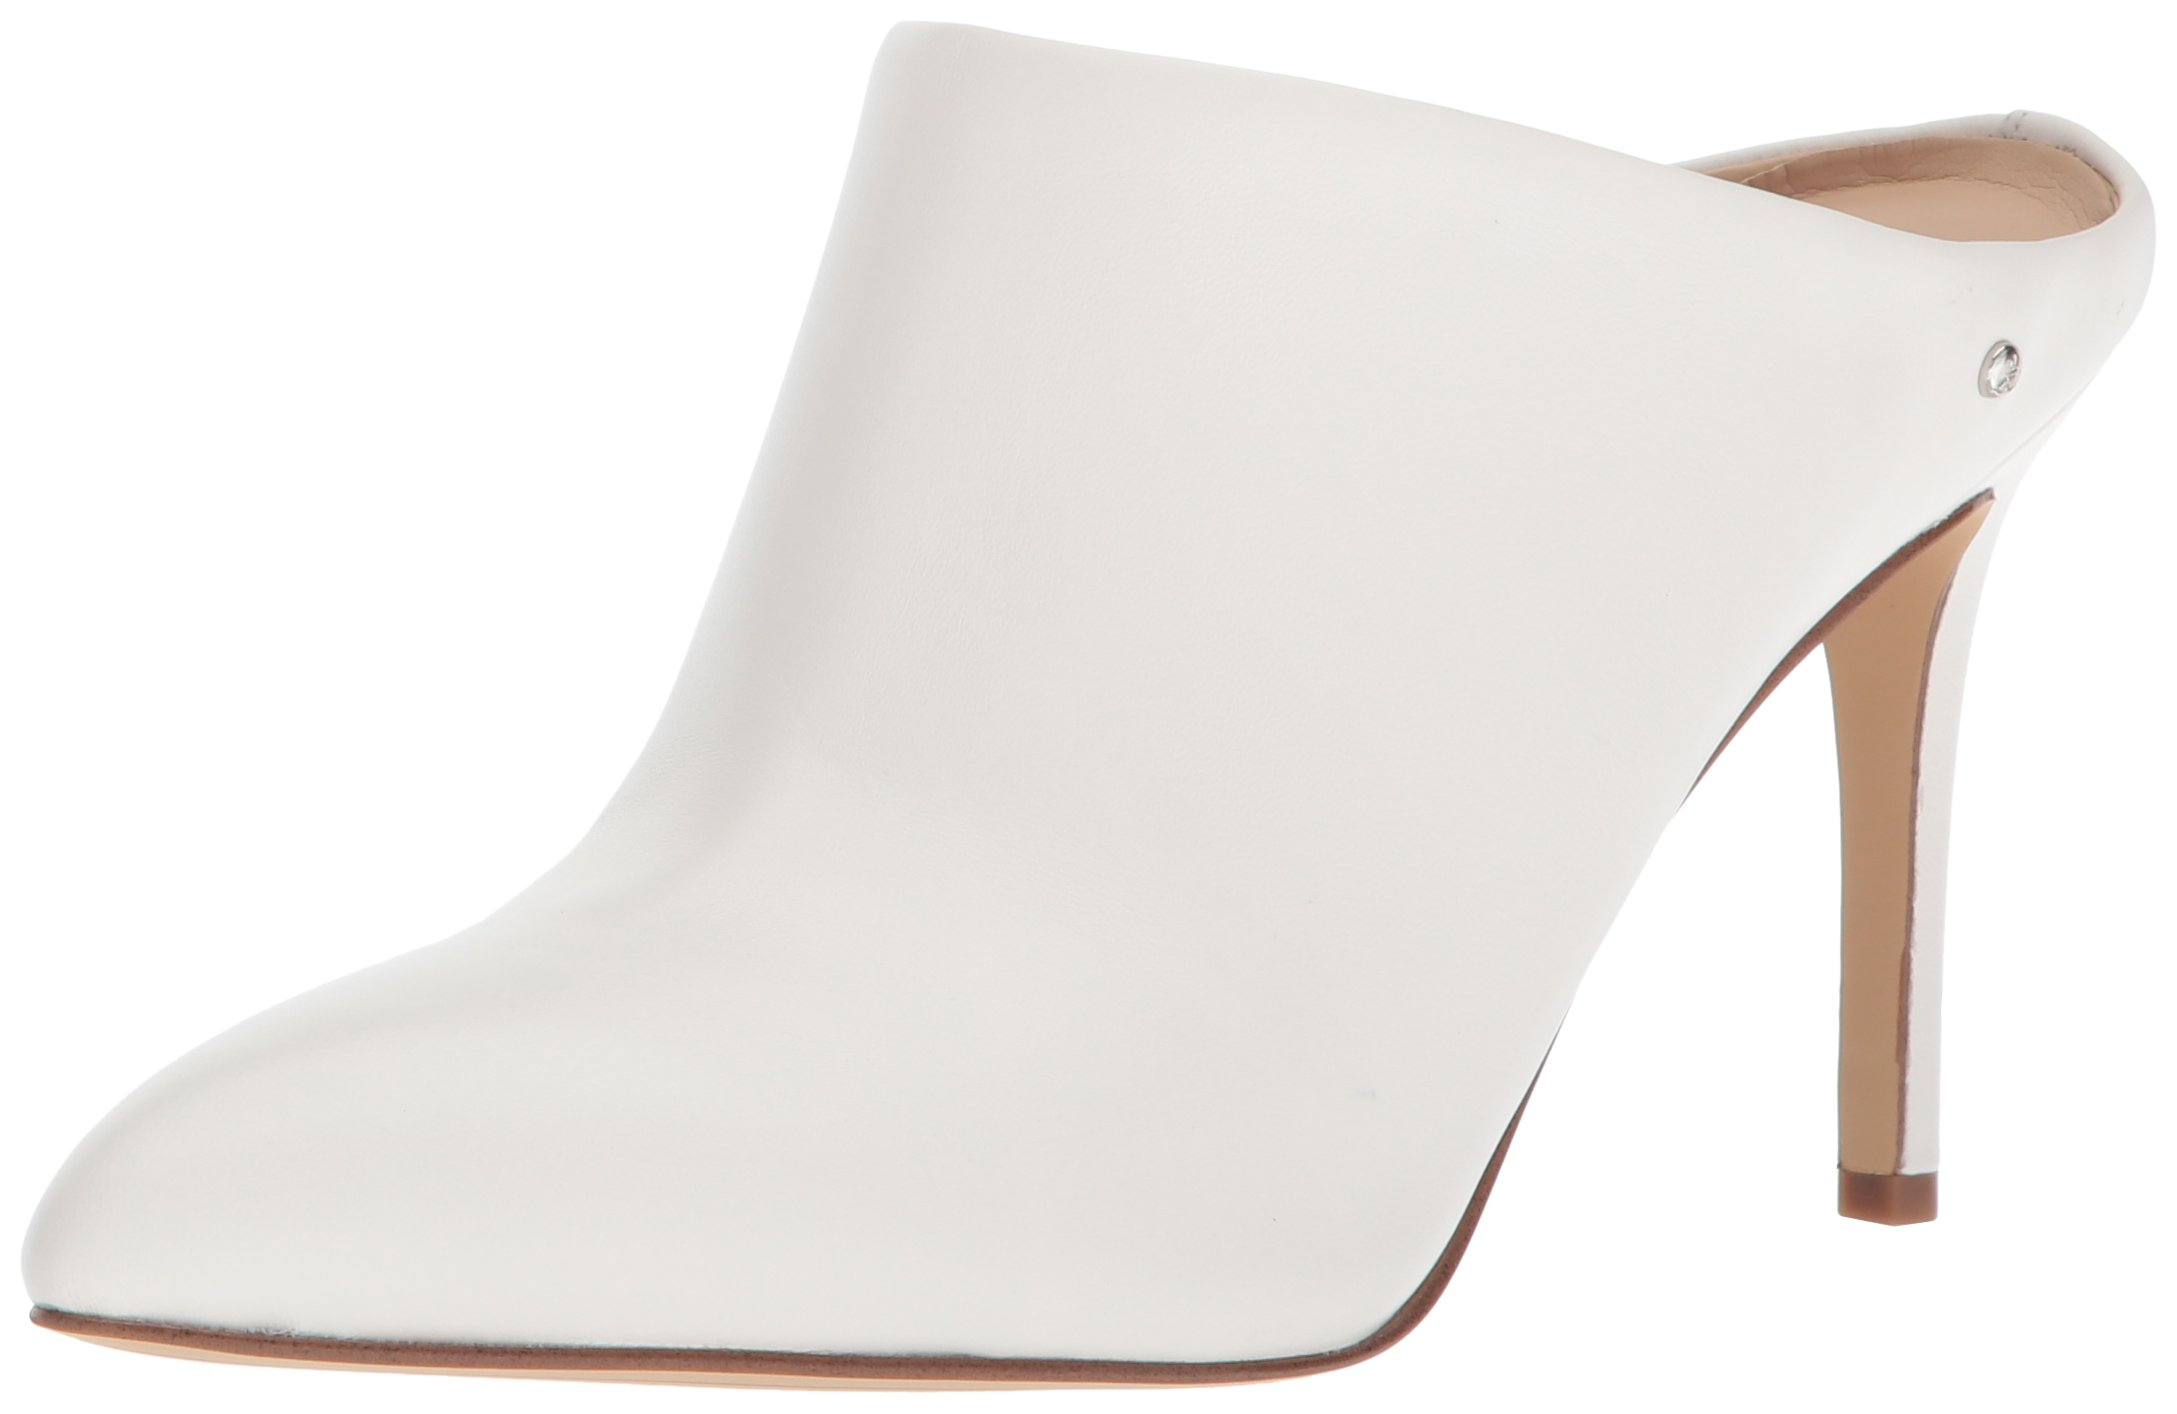 Sam Edelman Women's Oran Mule, Bright White Leather, 6 Medium US